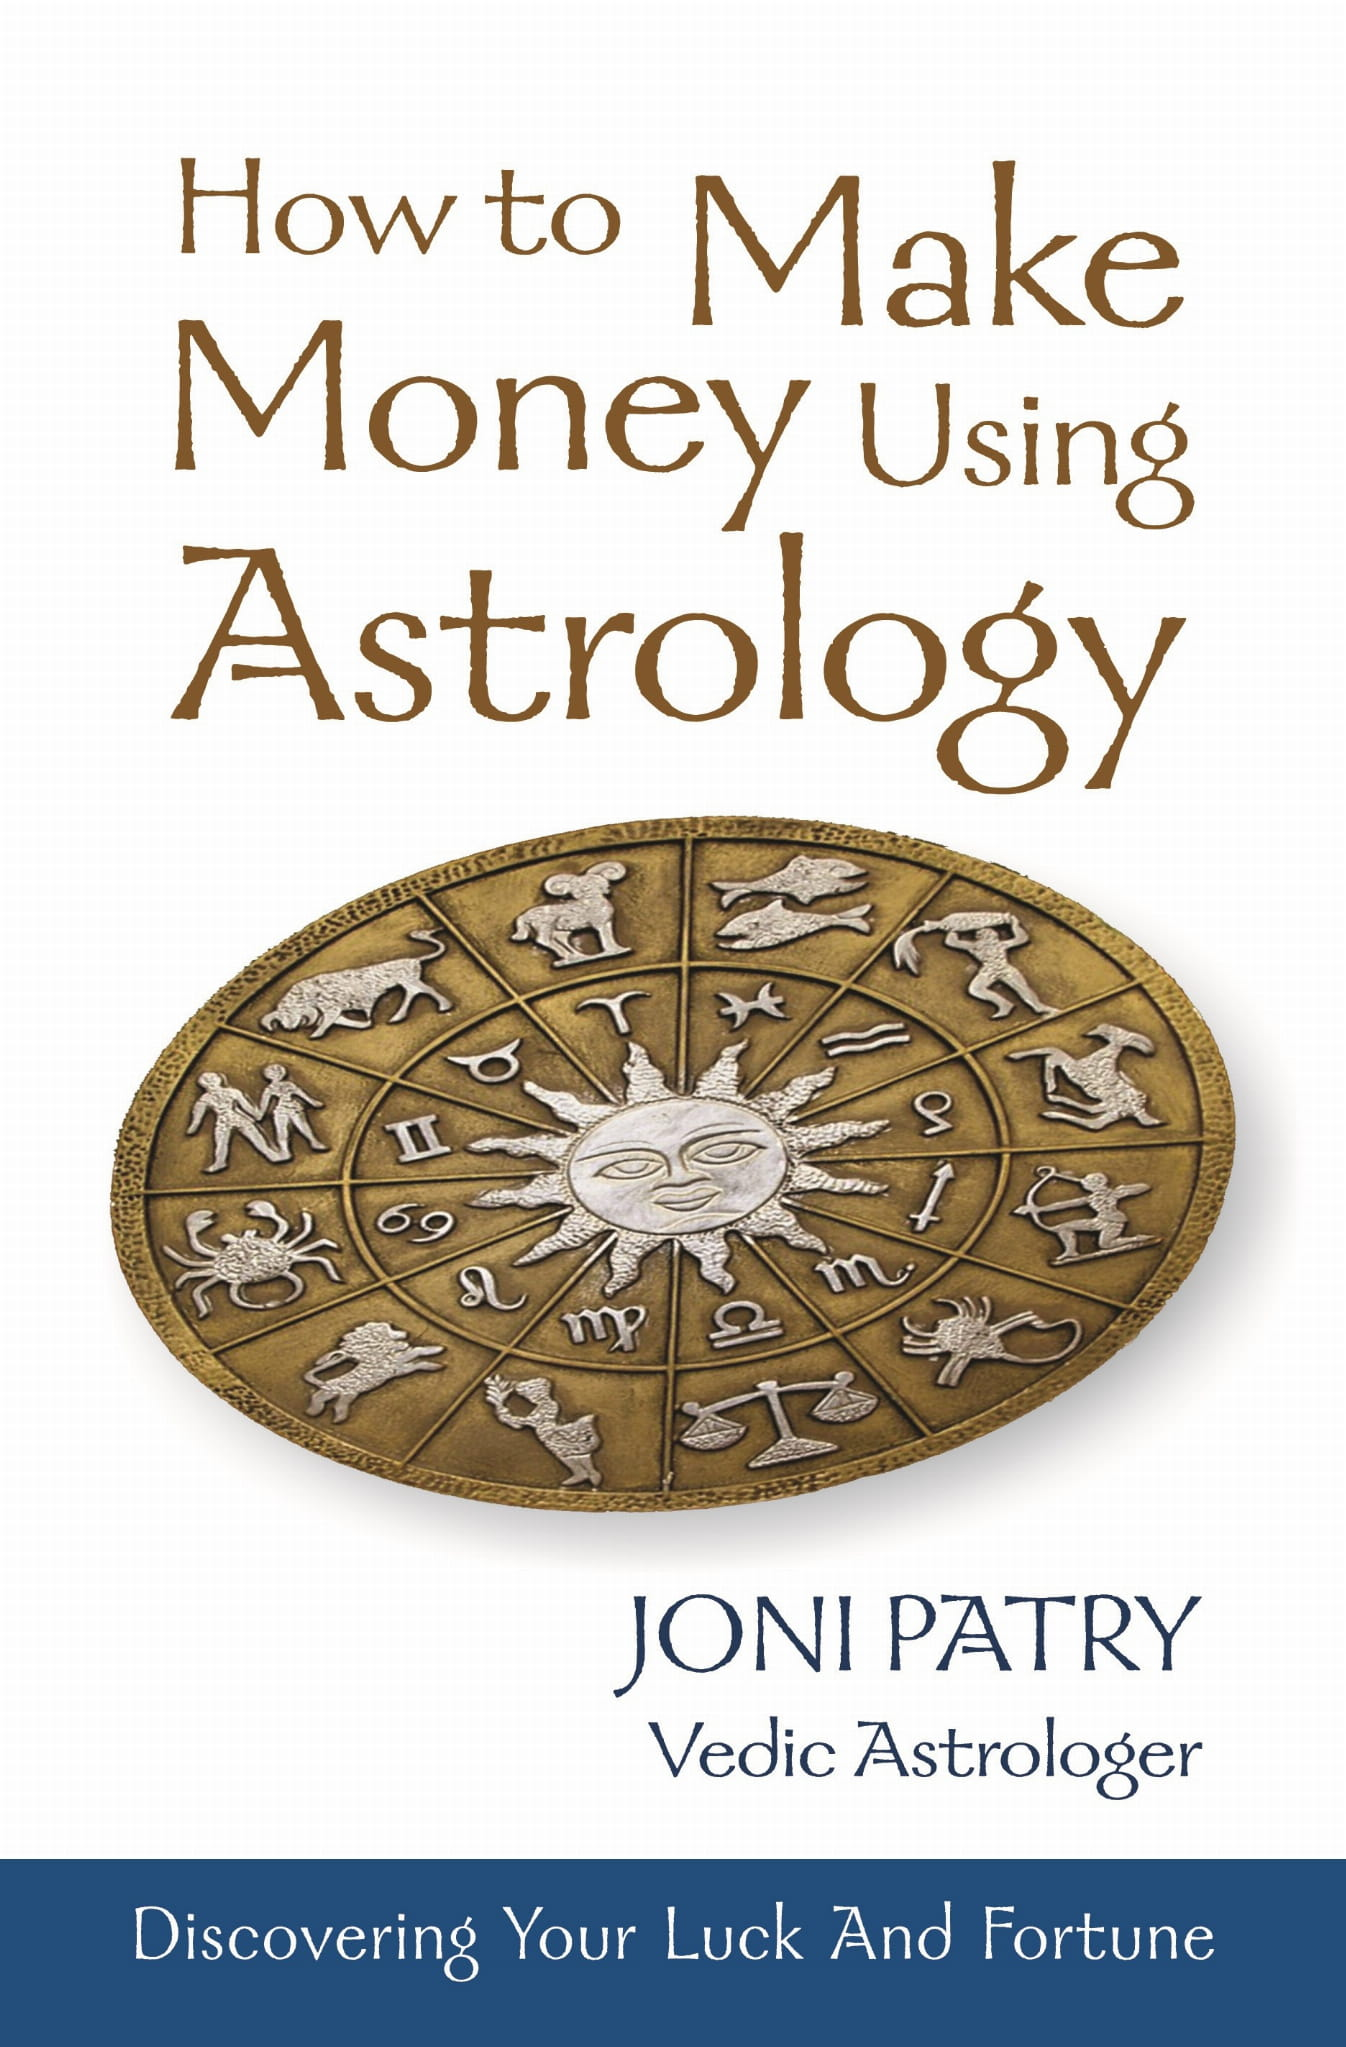 How to make money using astrology by joni pat0ry saptarishis how to make money using astrology by joni pat0ry saptarishis astrology geenschuldenfo Images